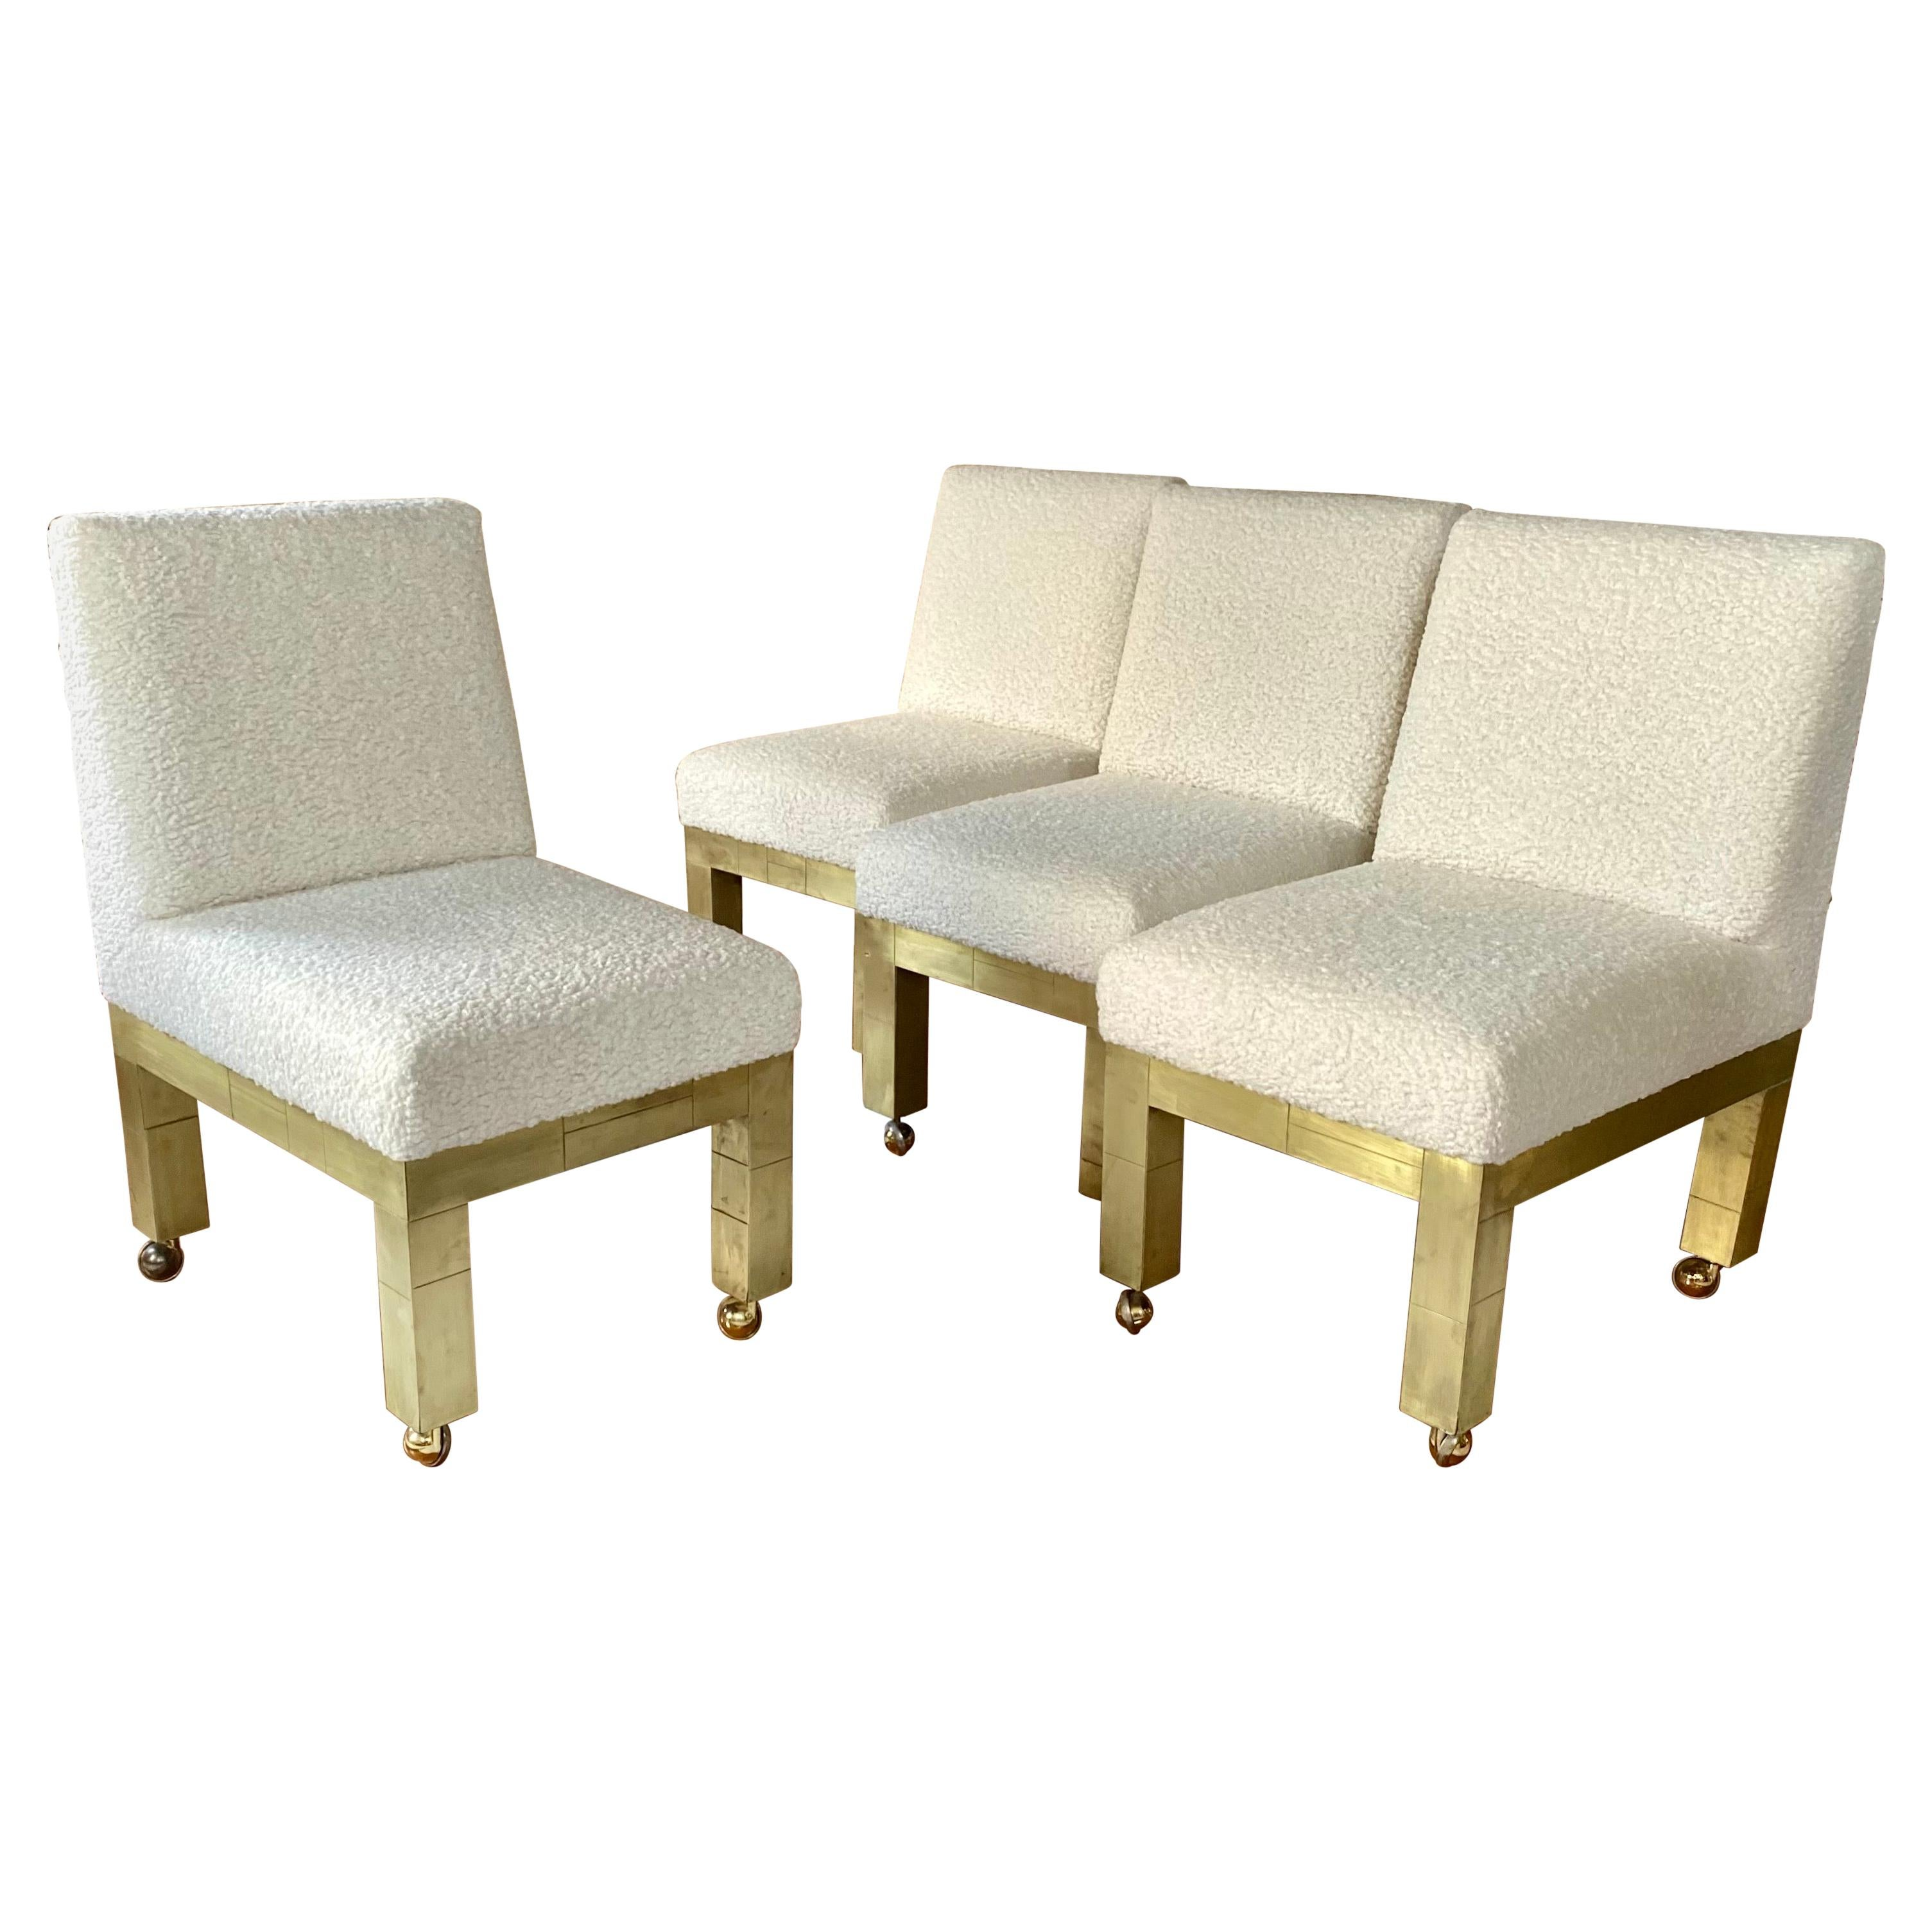 Paul Evans Cityscape Cubist Dining Chairs Mid-Century Modern Boucle Fabric 1970s